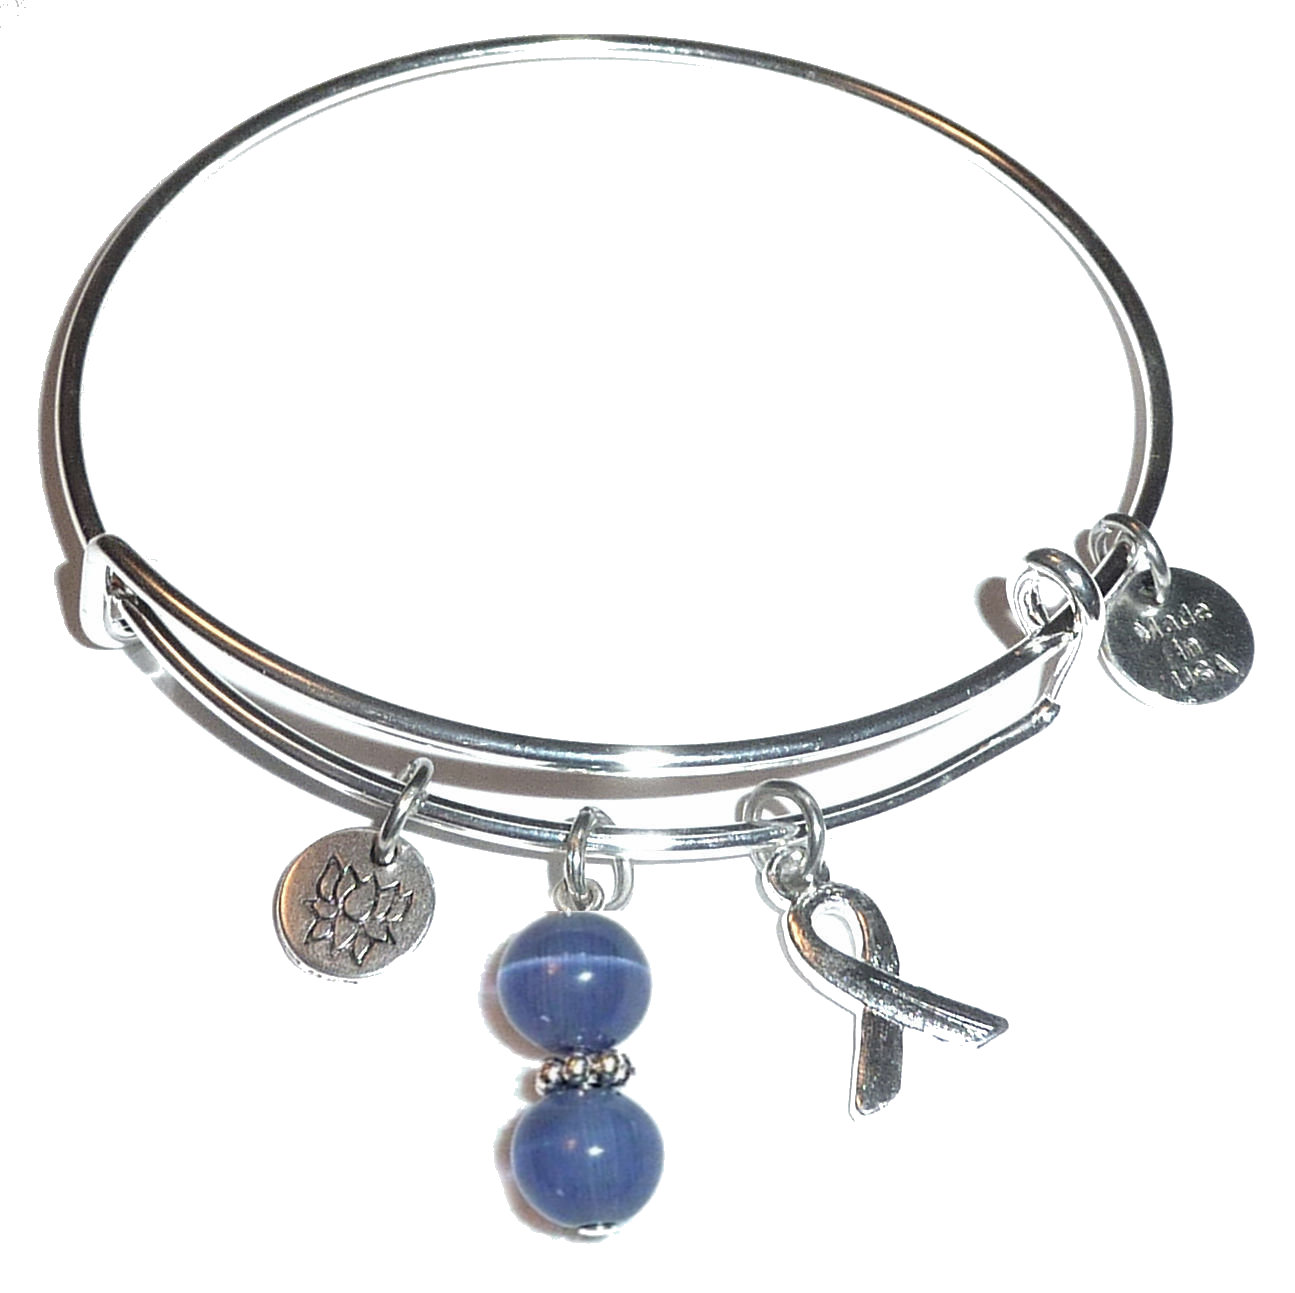 Periwinkle Stomach Cancer Hope For The Cure Bangle Bracelet Expandable Wire Comes In A Gift Box